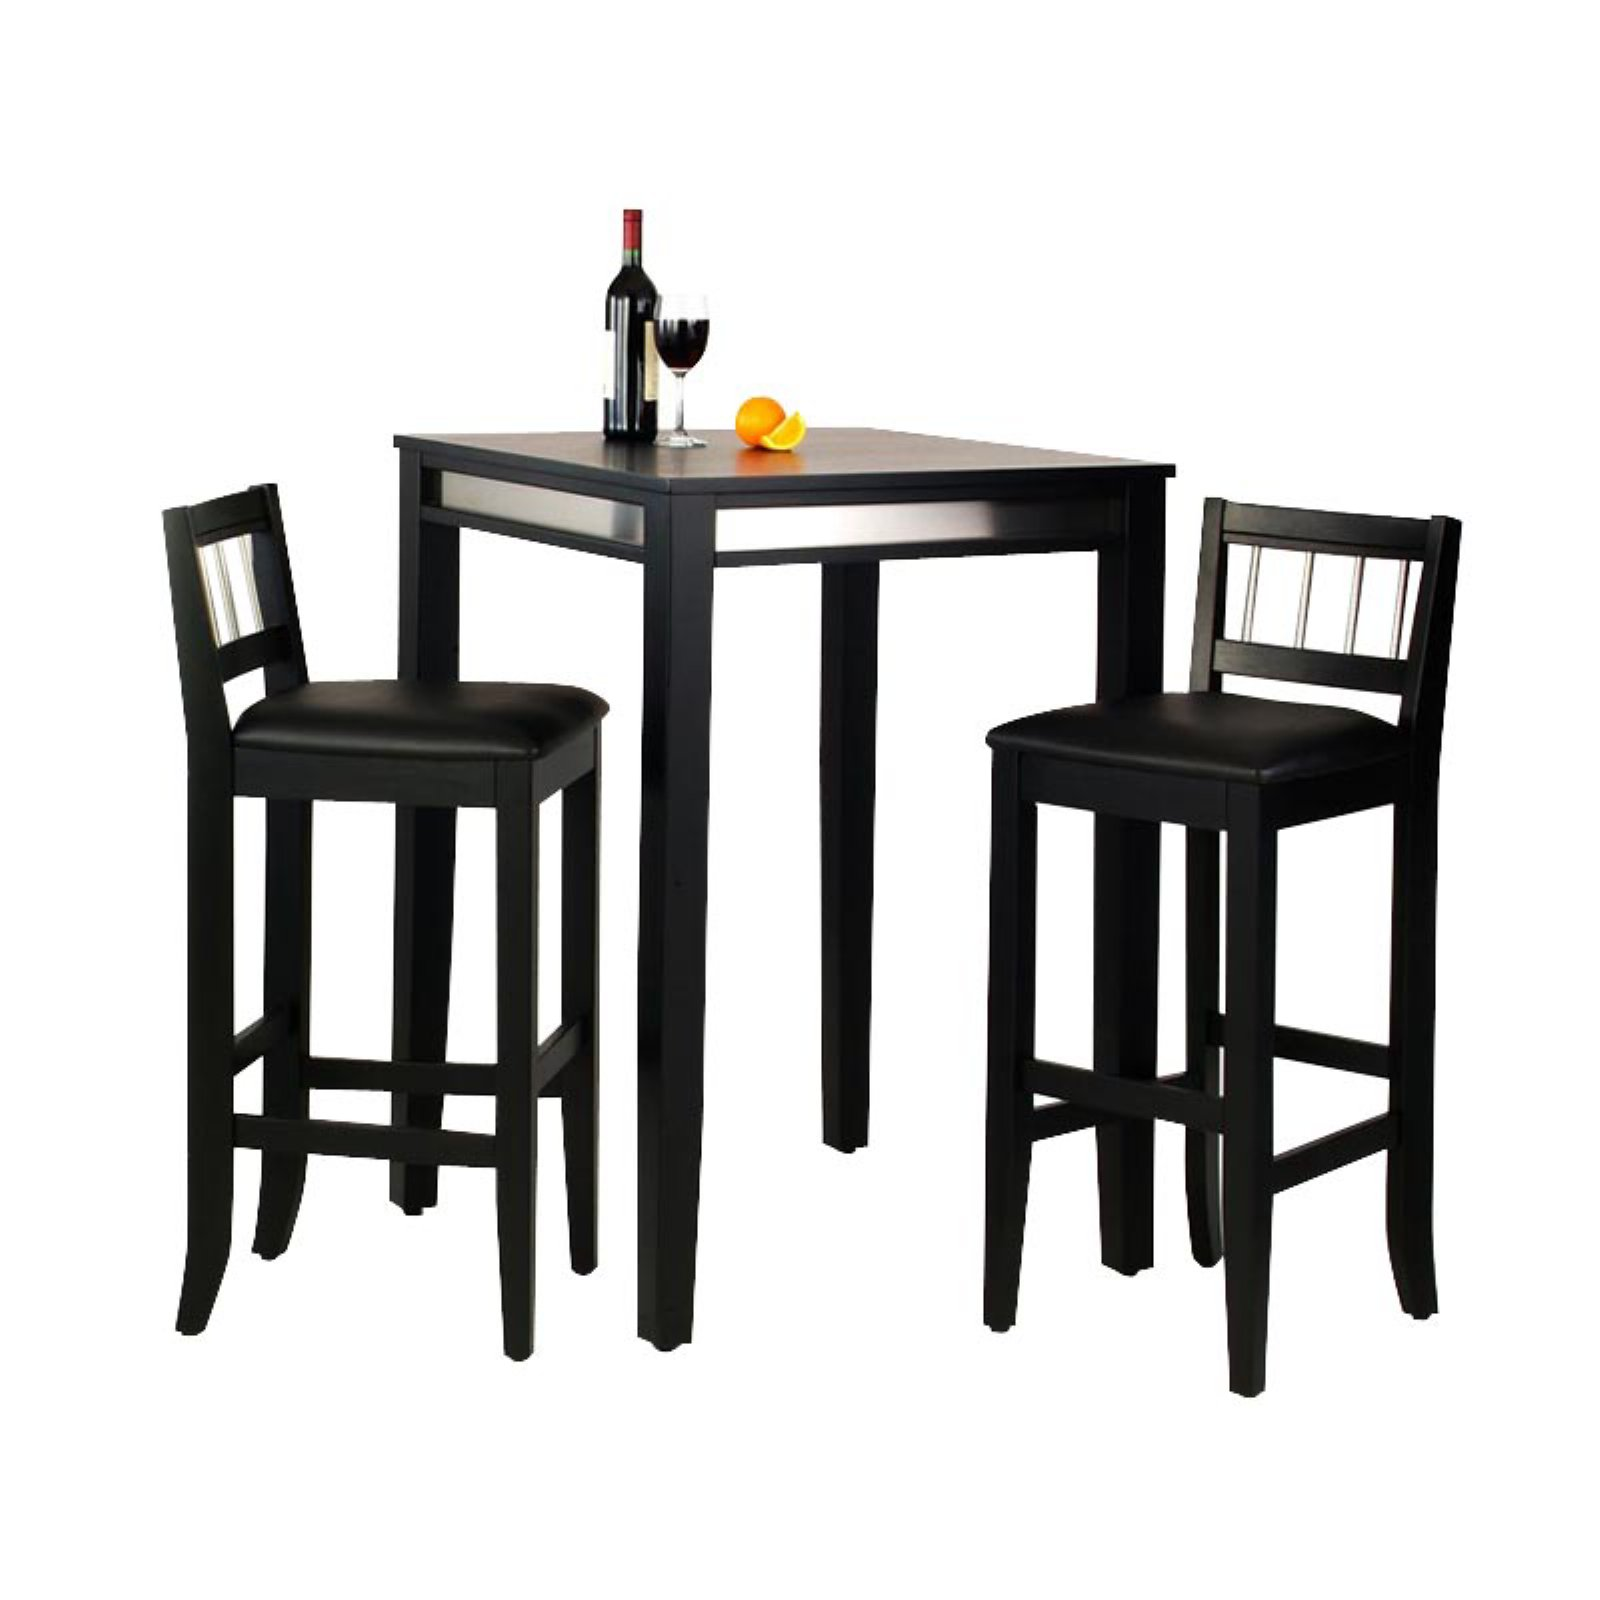 Home Styles Manhattan Black Pub Table and 2 Stools